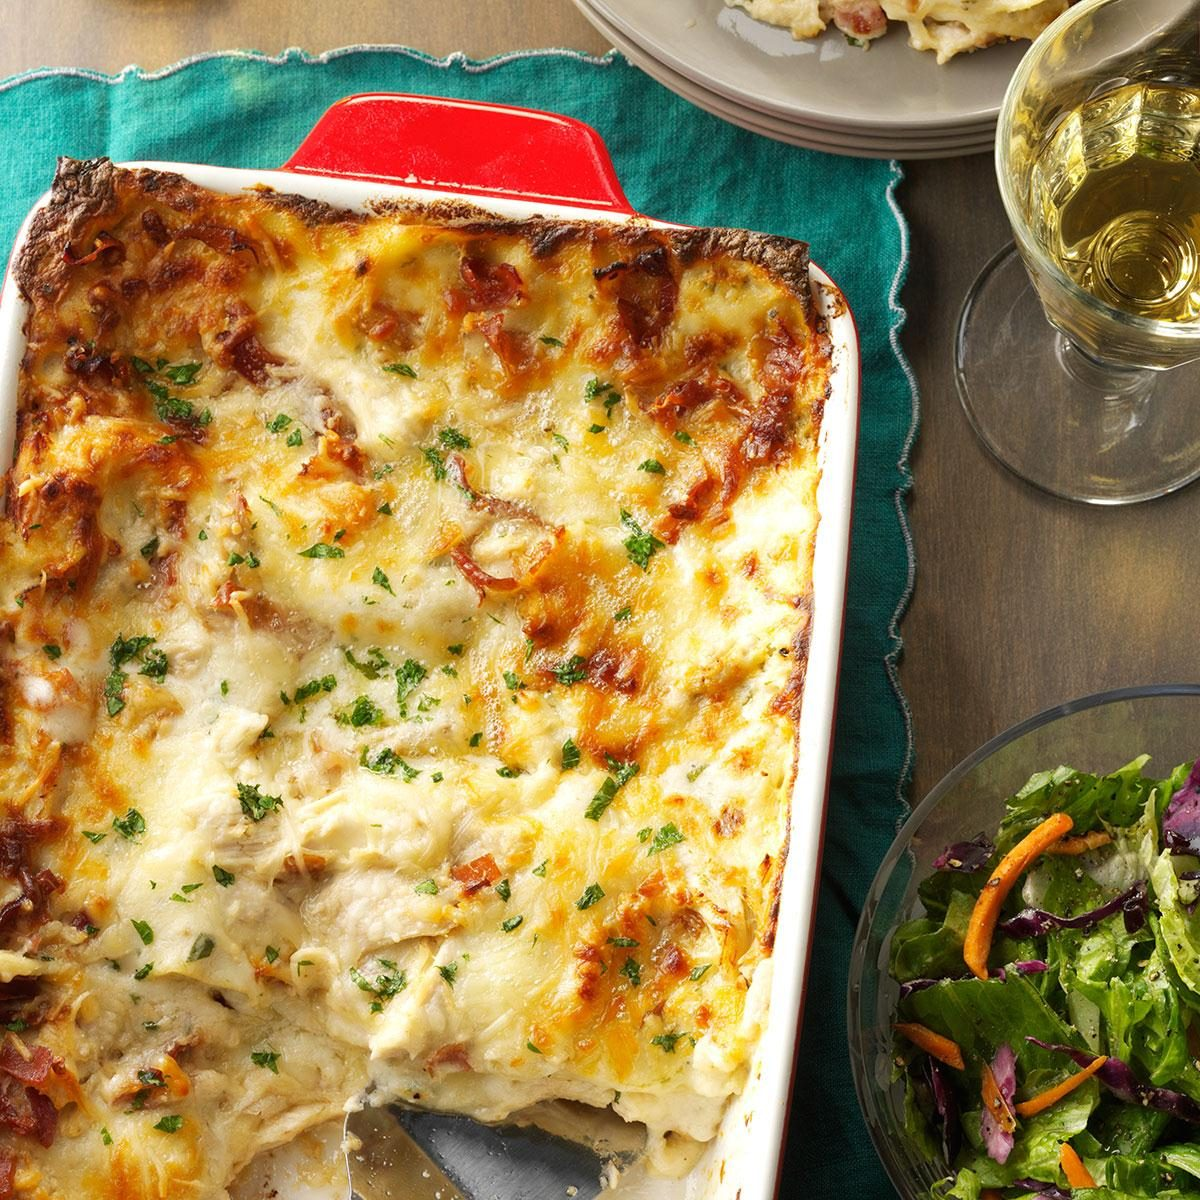 Chicken alfredo lasagna recipe taste of home for What can i make for dinner with chicken